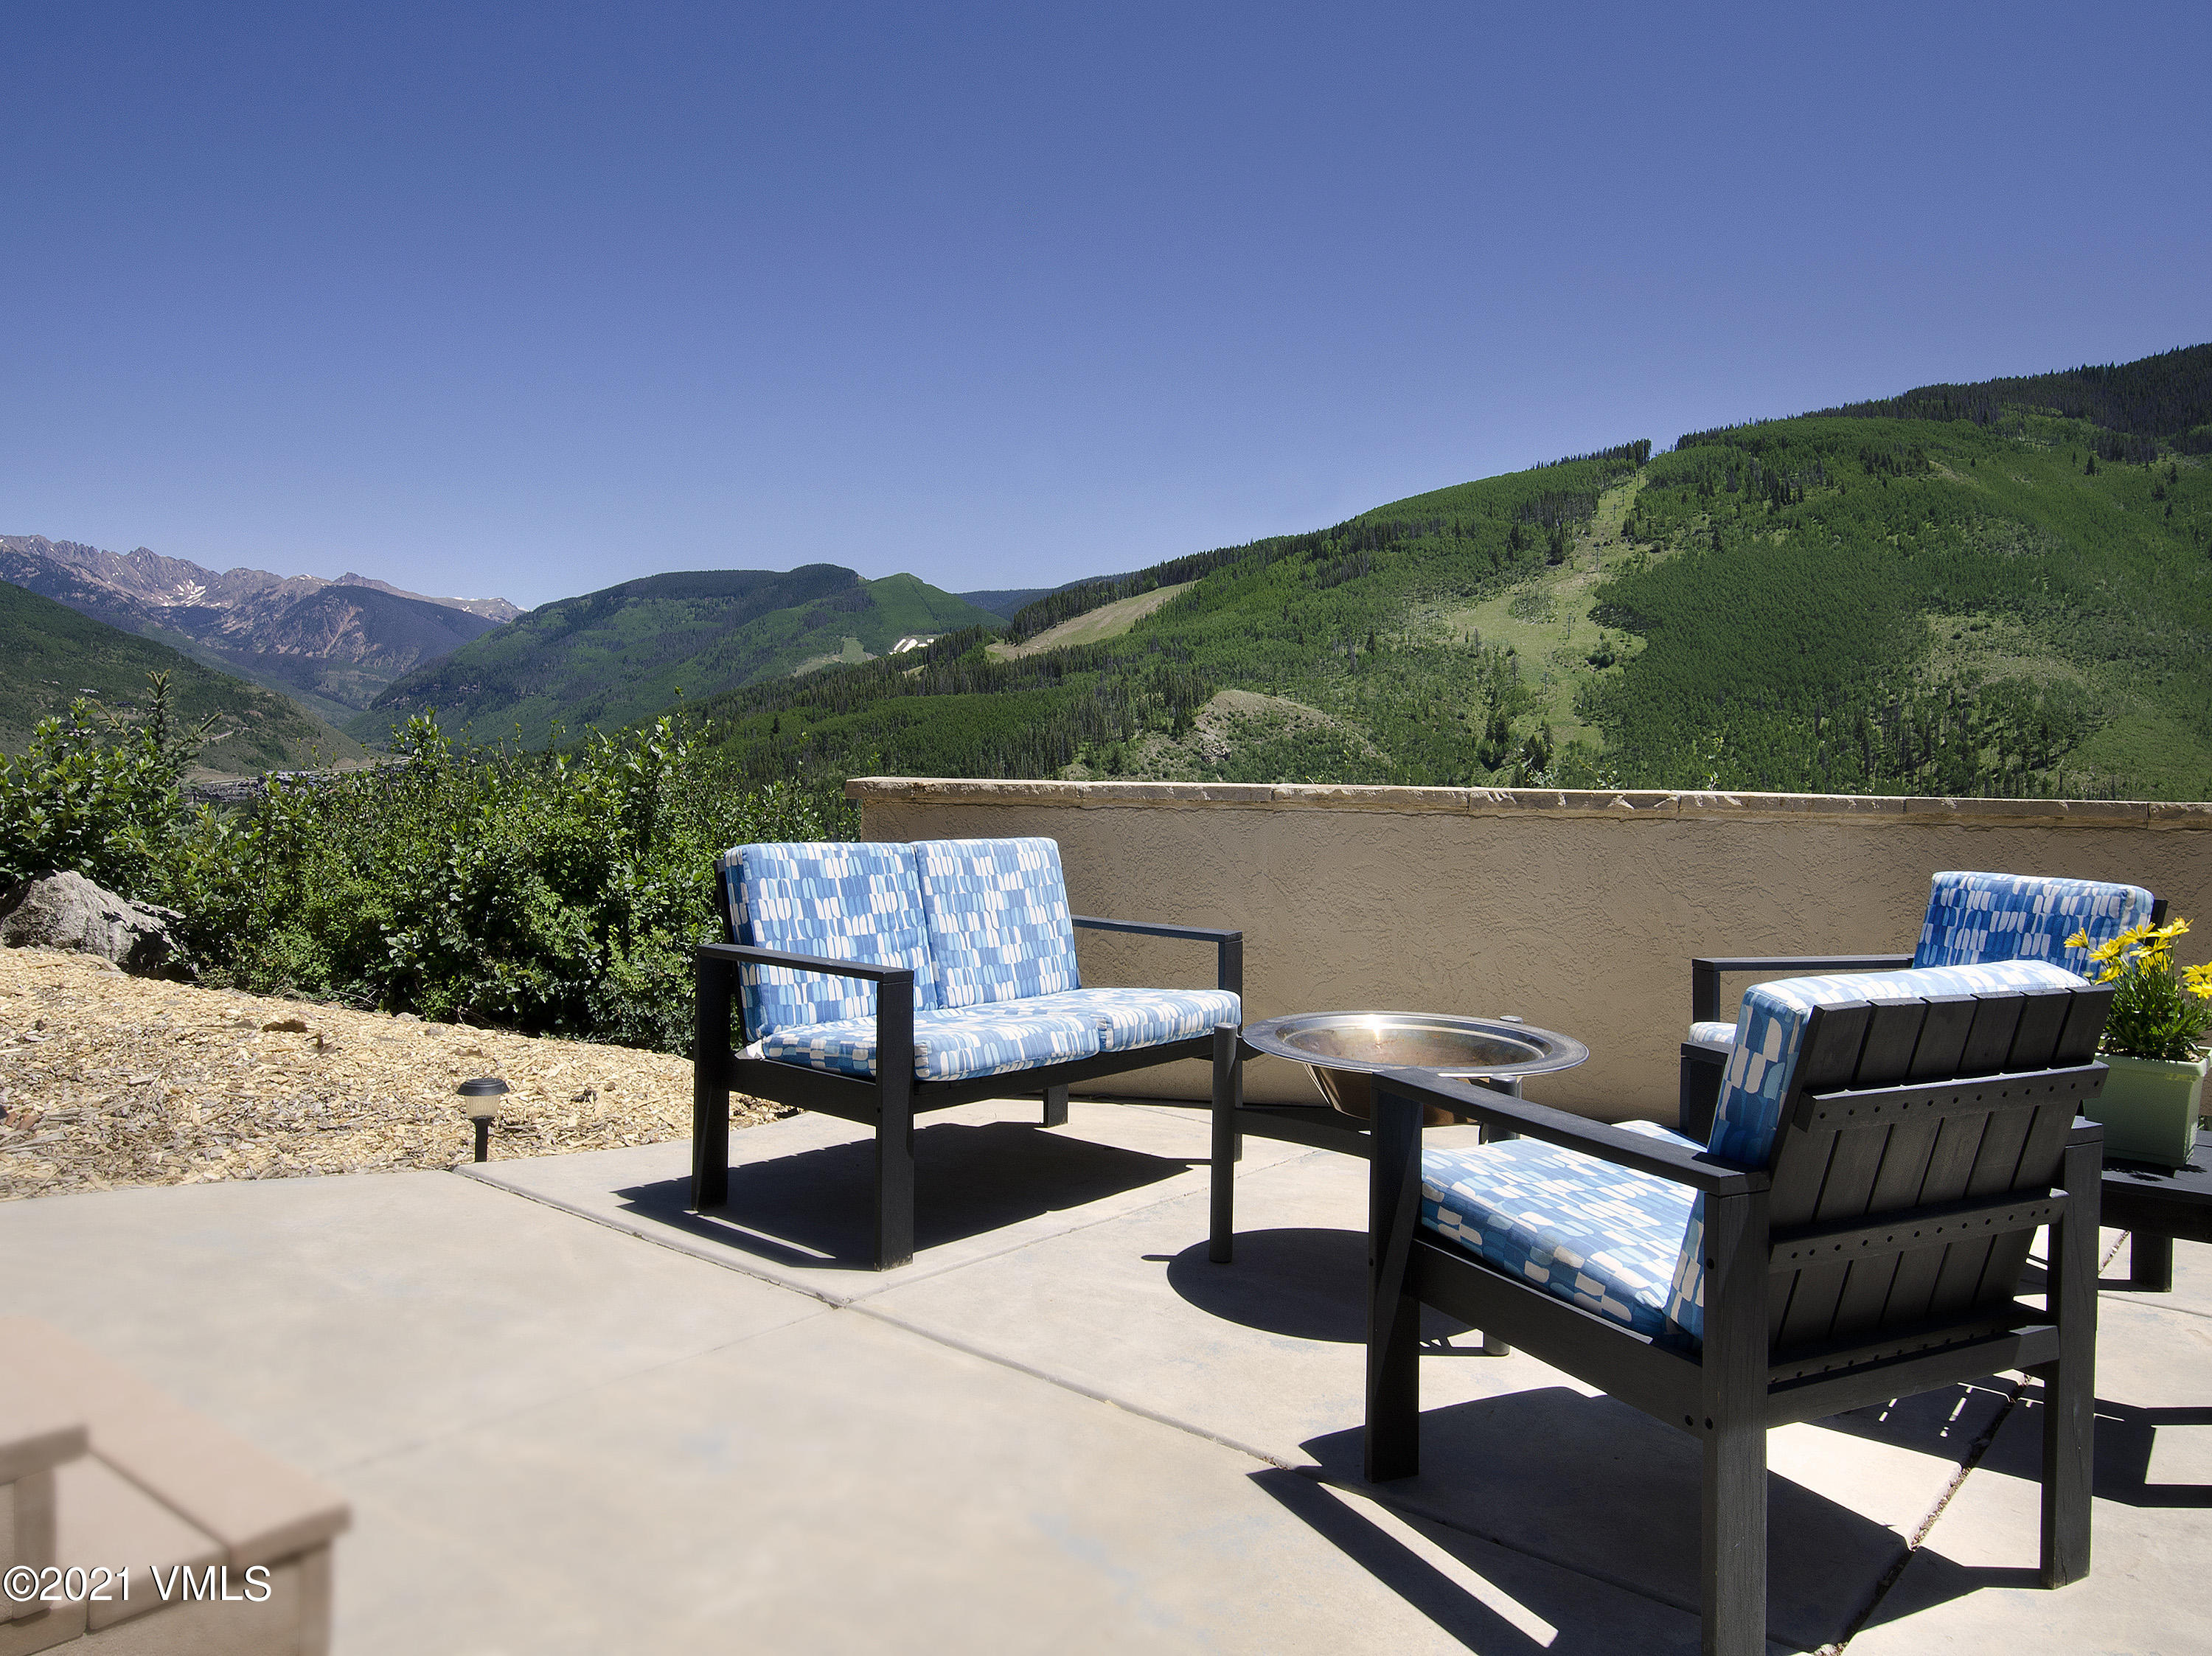 Have it all in Vail!  This 4-bedroom residence is nestled among the aspen trees yet filled with sunlight high on Aspen Ridge in Buffehr Creek in a private cul-de-sac .  This home captures phenomenal views of the Gore Range and the Vail Ski Mountain with a private patio for entertaining, family fun and taking in the Vail lifestyle.  An elevator provides easy access to the home from the garage and the lower level is perfect as a media room, game room or gym.  A new metal roof was recently installed.  Tons of storage in the home as well.  This is a good rental investment or a great opportunity to make it your own with some updating.